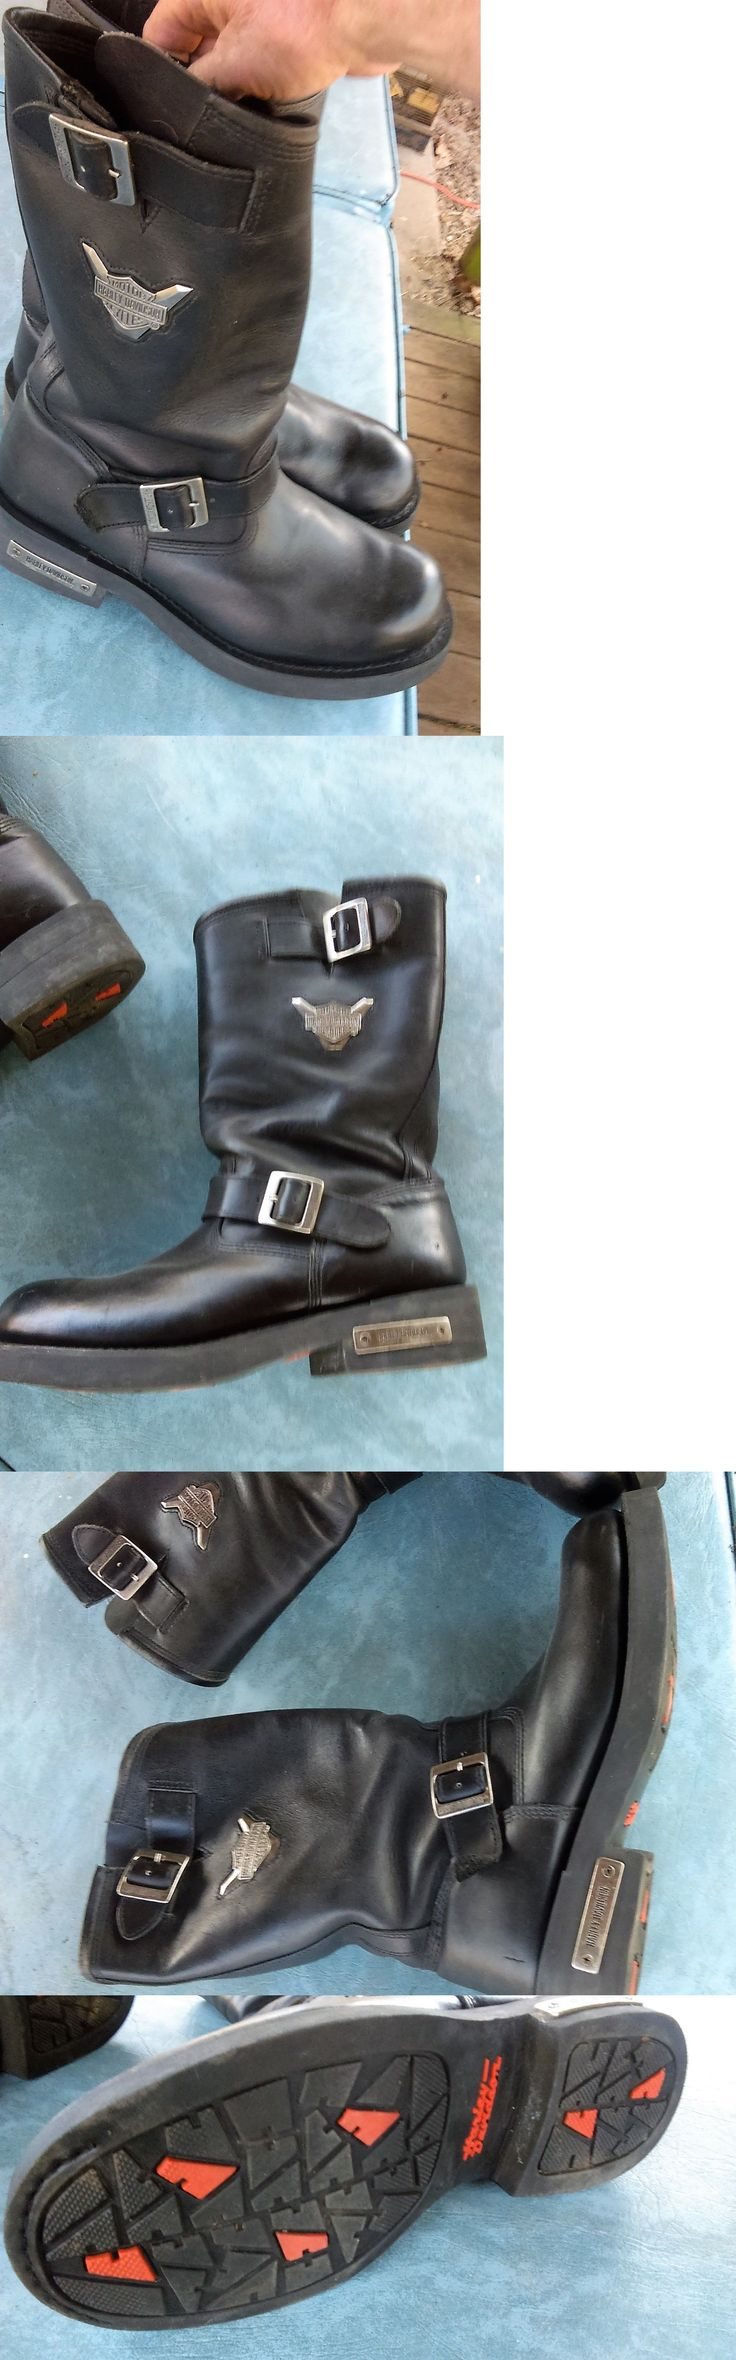 Motorcycles: Harley Davidson Motorcycle Boots 91135 Size 12 -> BUY IT NOW ONLY: $80 on eBay!